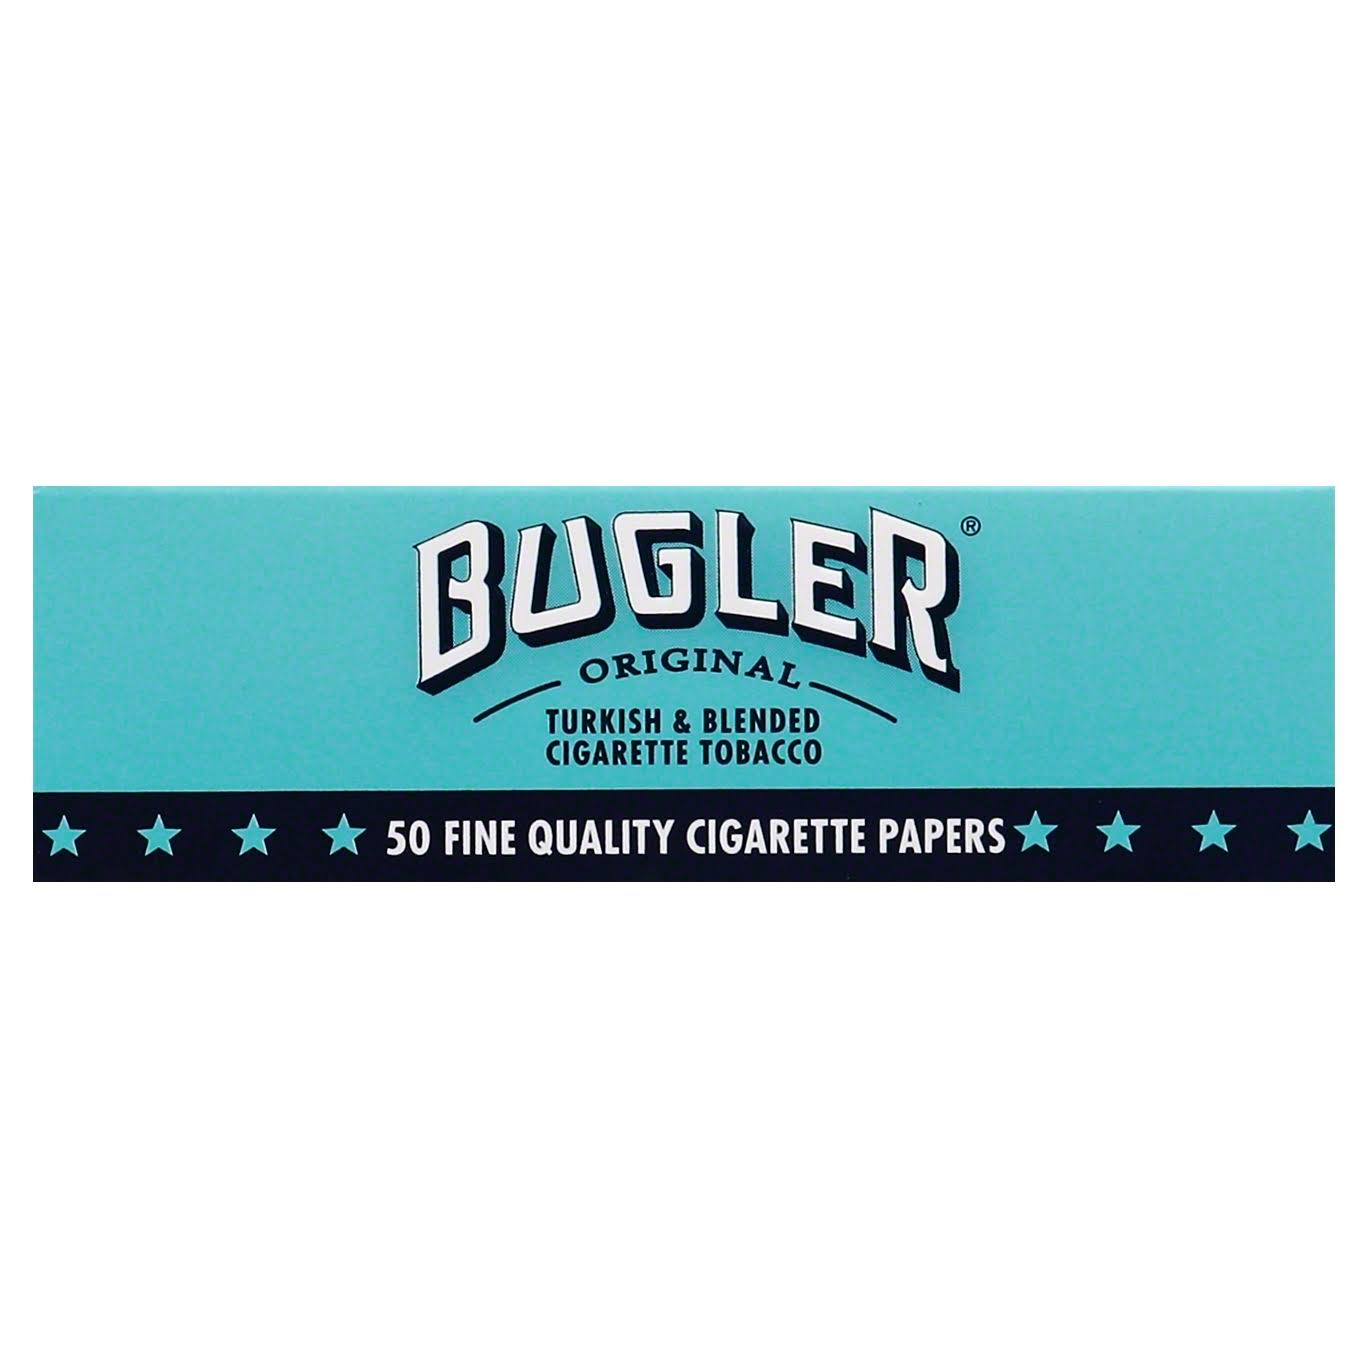 Bugler Cigarette Papers - 50 papers